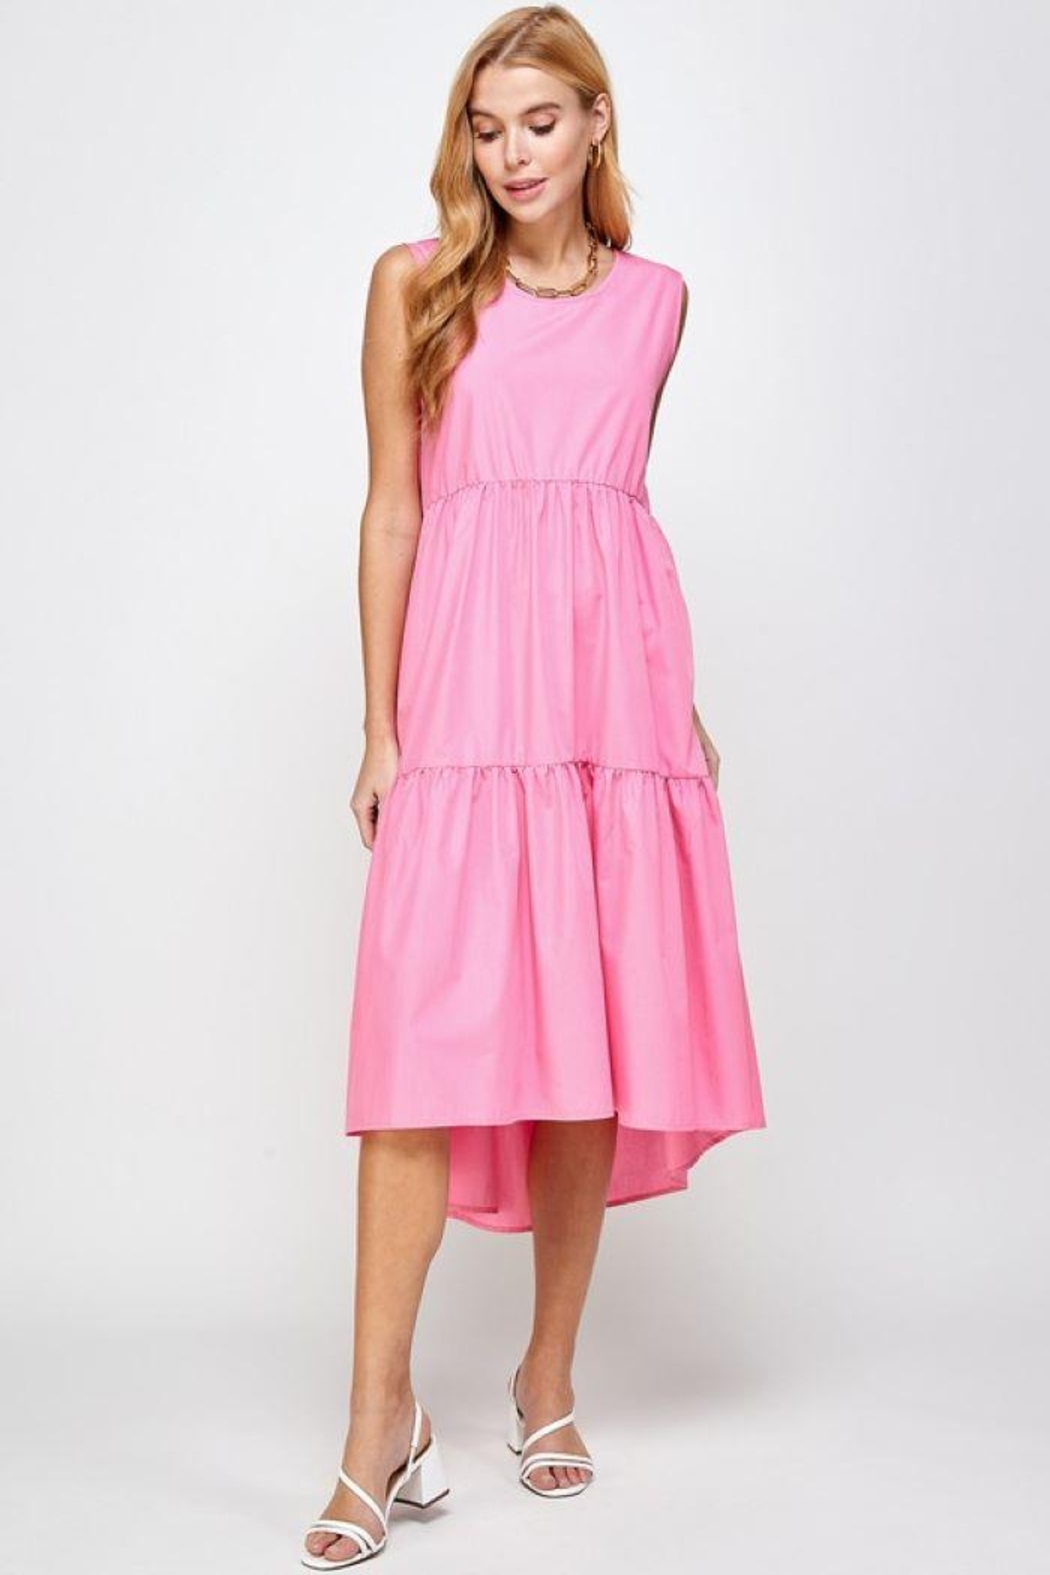 Sans Souci Sleeveless Tiered Poplin Dress - Main Image